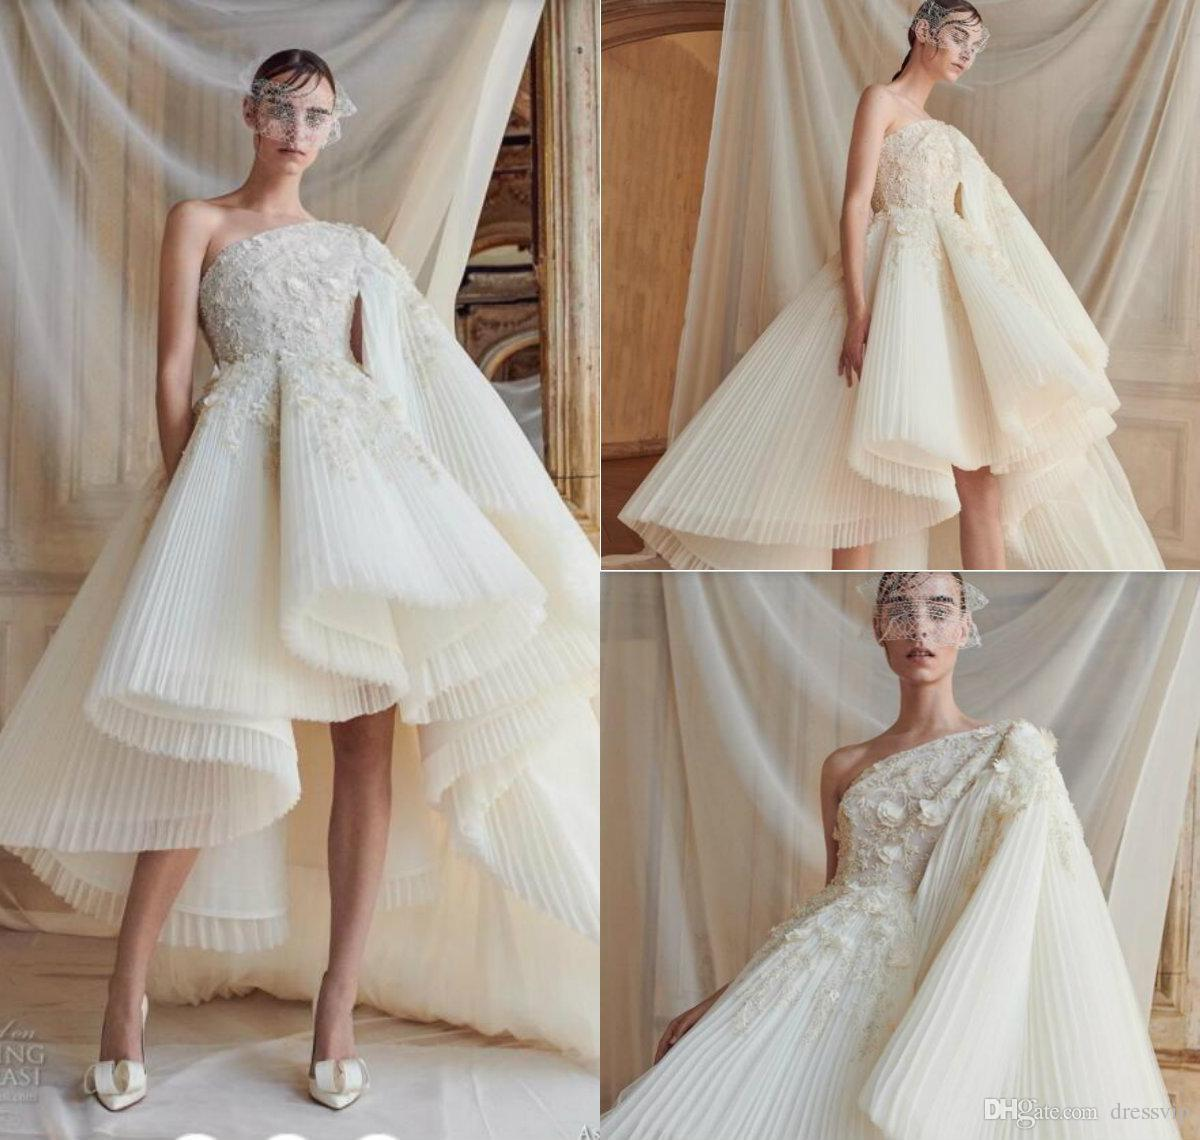 Vintage Wedding Dresses For Sale: Discount Ashi Studio 2019 Vintage Wedding Dresses A Line